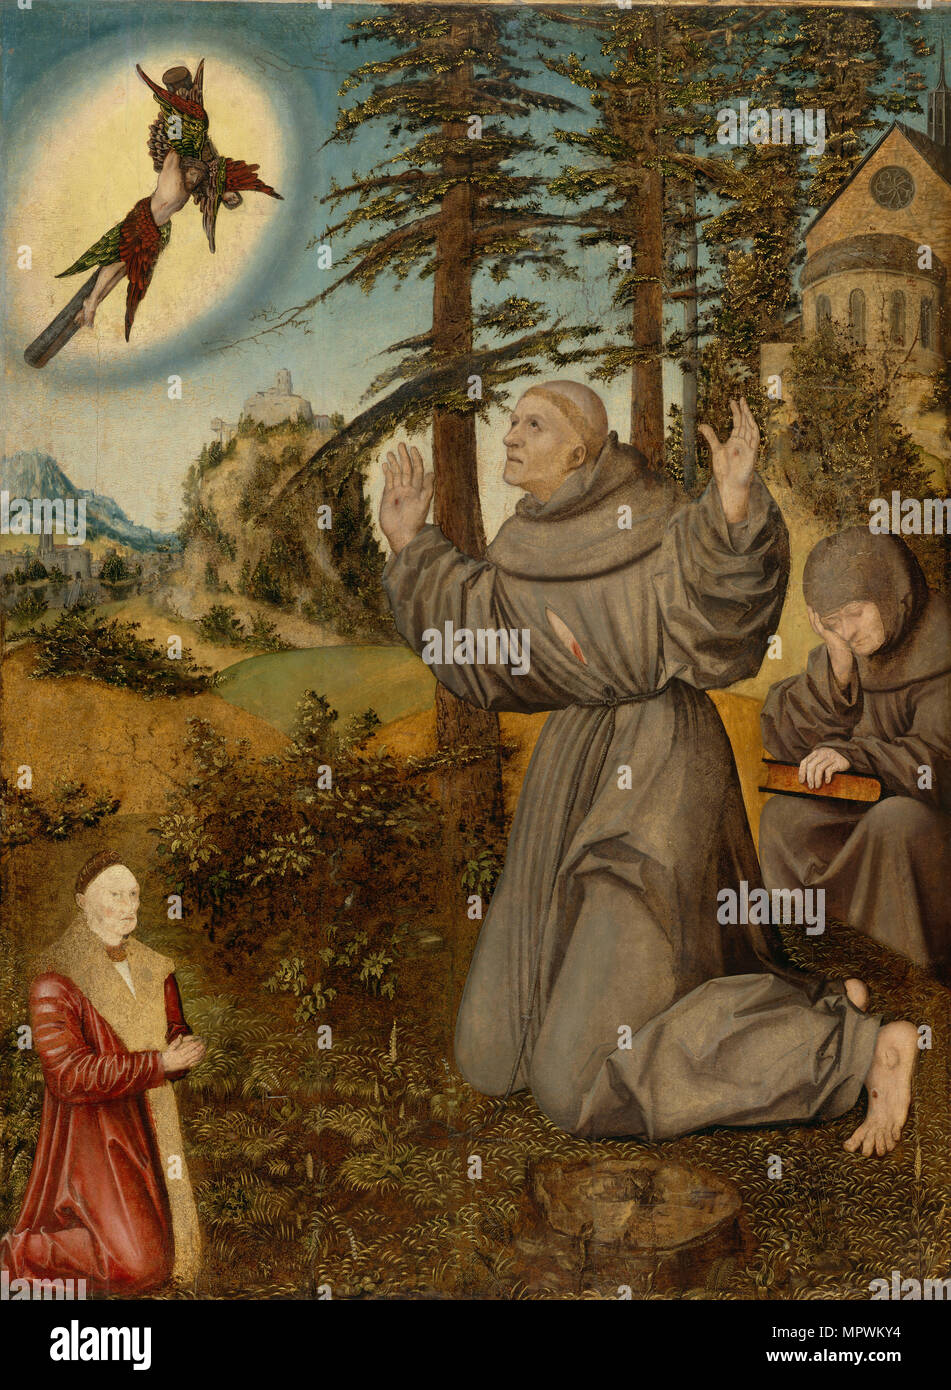 Stigmatization of Saint Francis, ca 1510-1515. - Stock Image